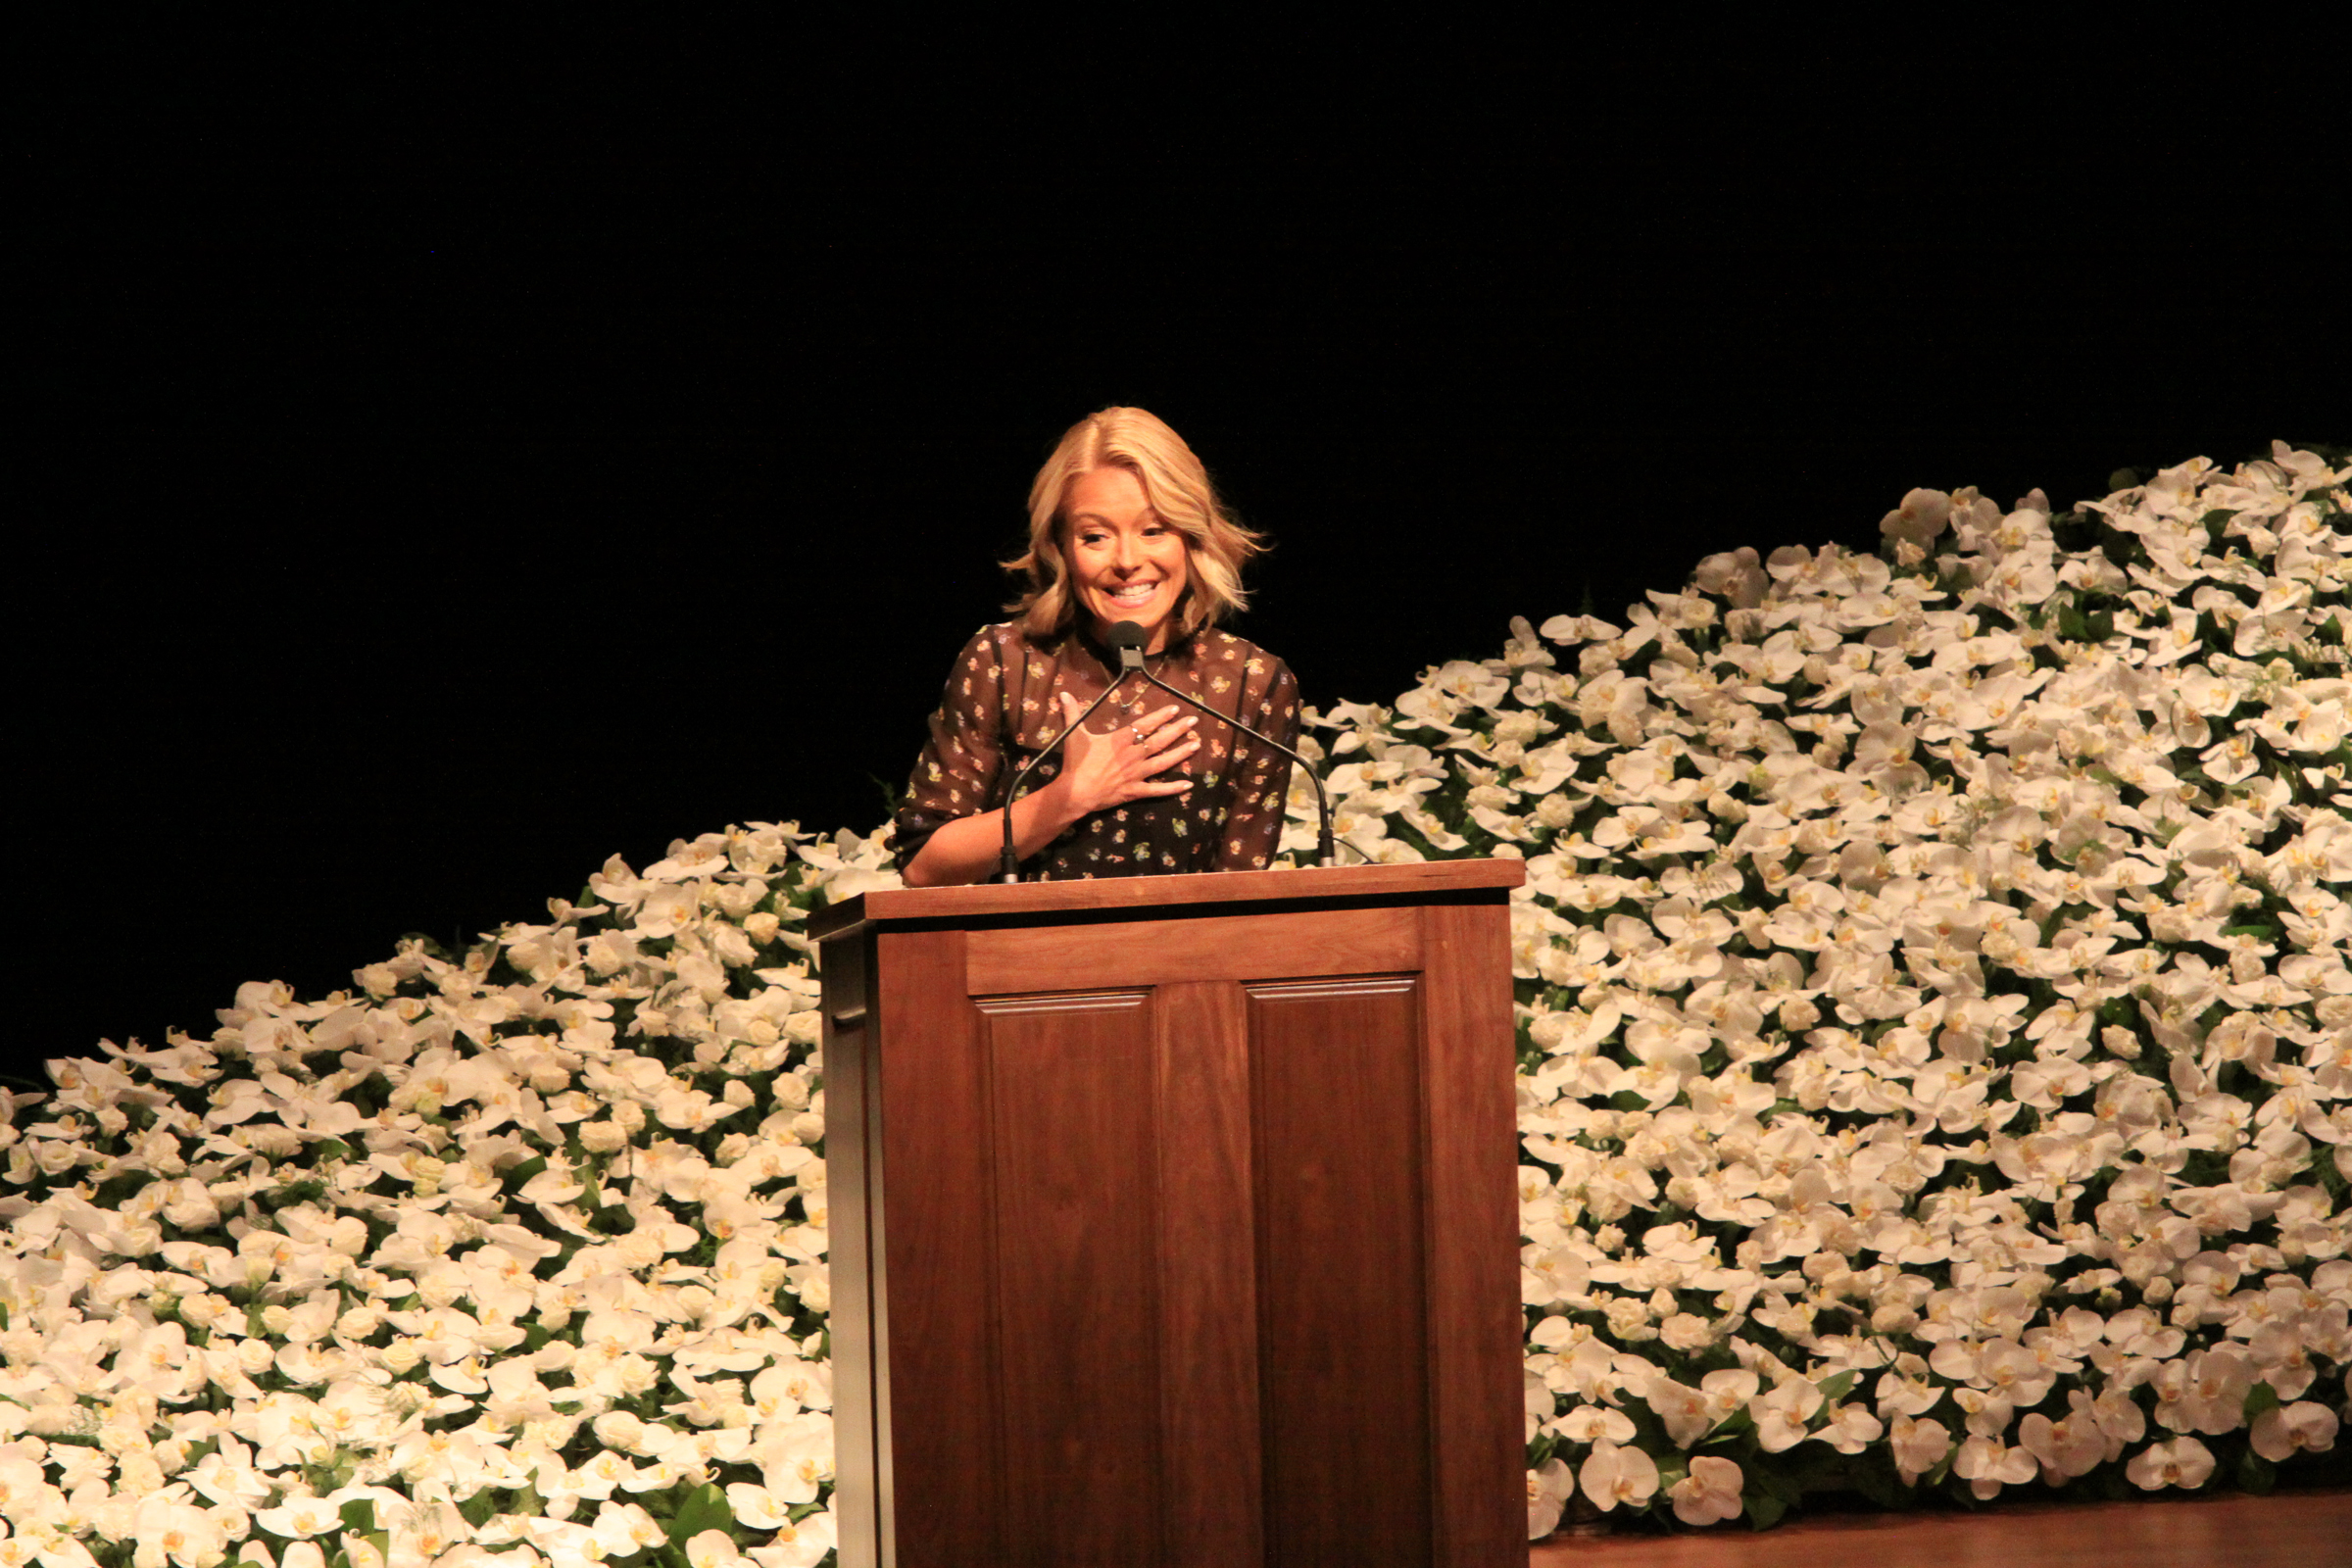 Kelly Ripa with the wave of orchids behind her at the memorial service for Dr. Fredric Brandt.